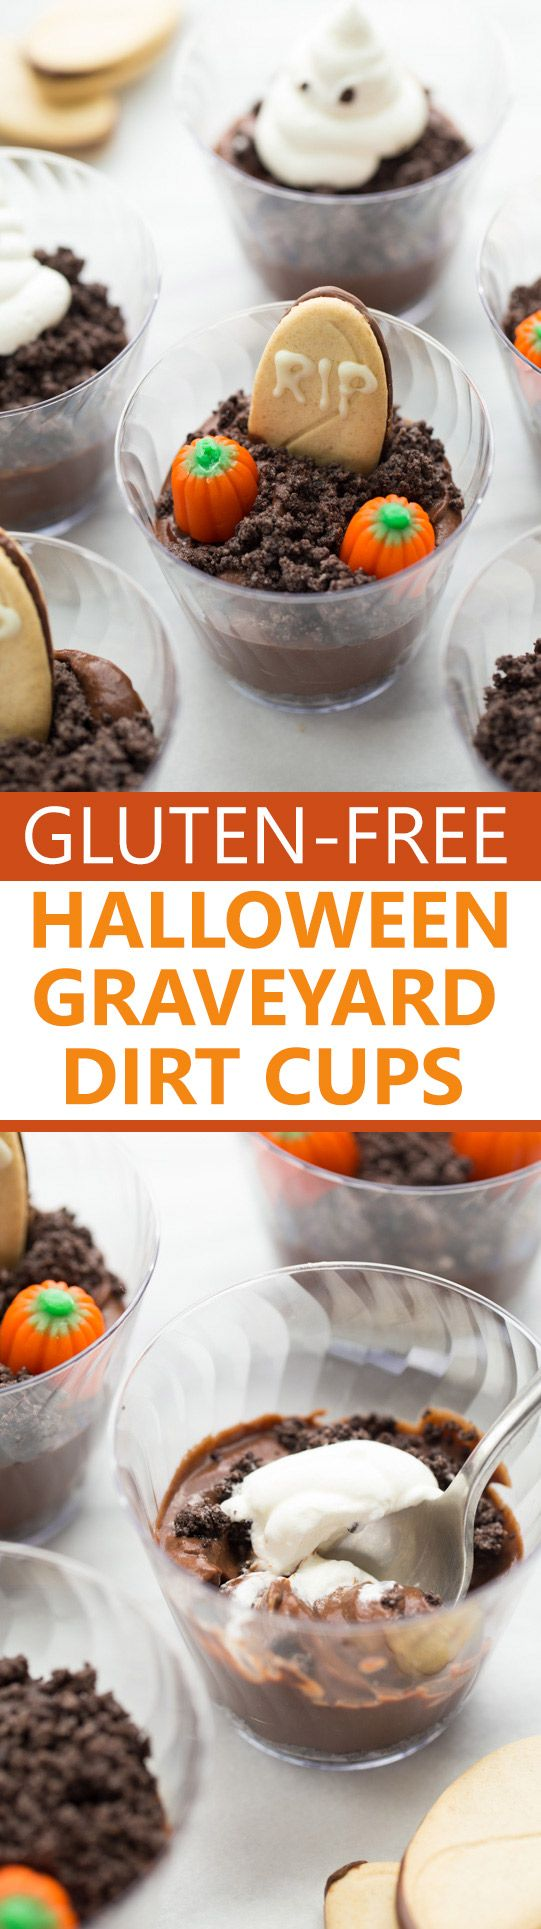 Halloween Graveyard Dirt Cups! Everyone loves these spooky treats! (Gluten-Free, Vegan)